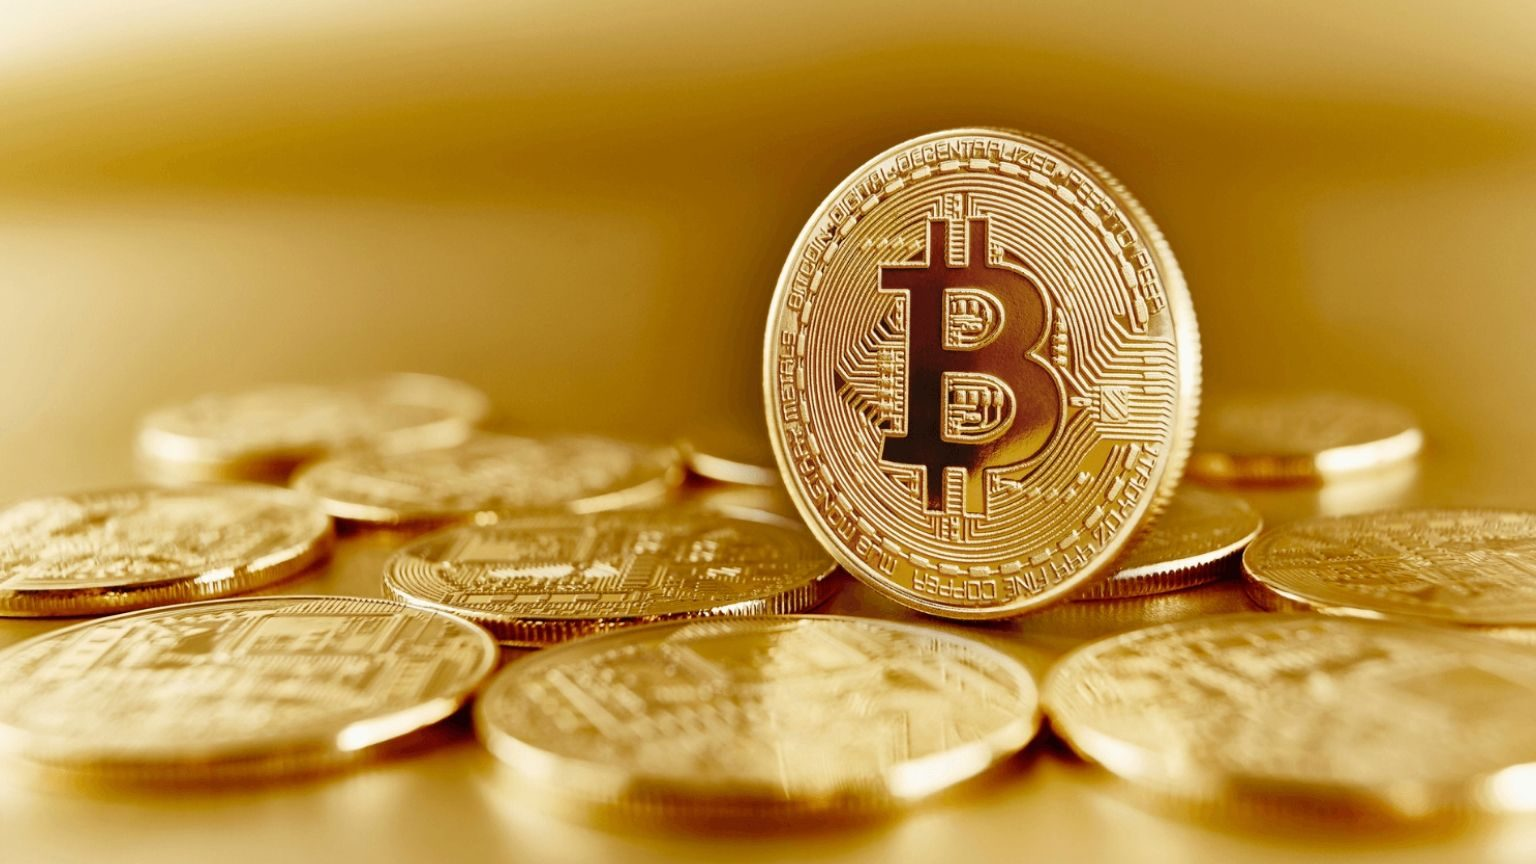 Closeup of Bitcoin cryptocurrency